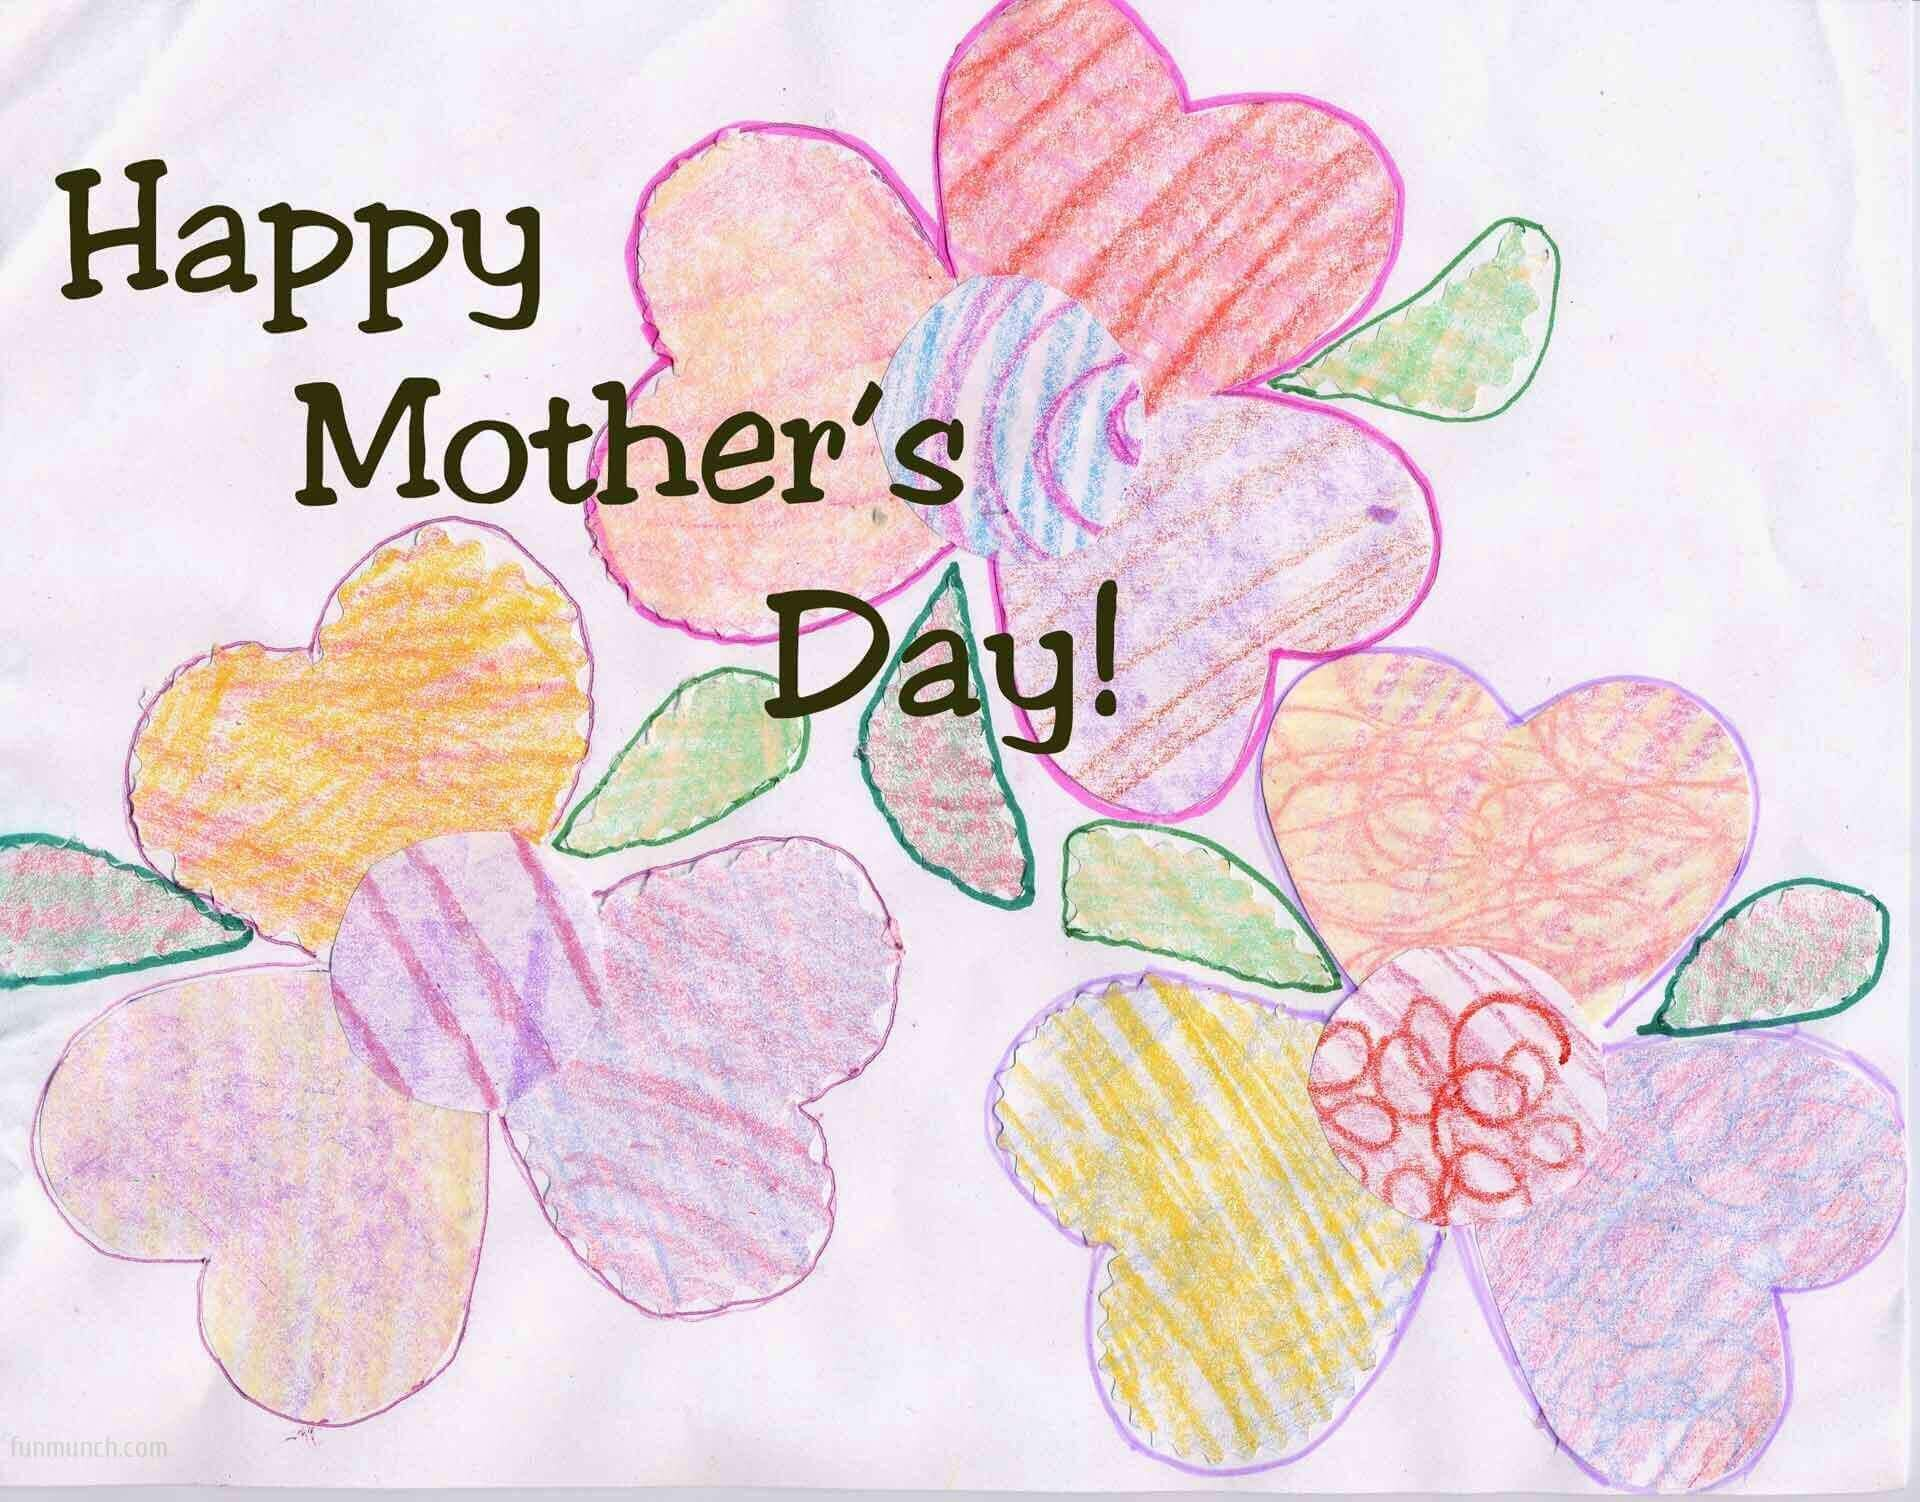 Happy Mothers Day sketch painting for drawing competition